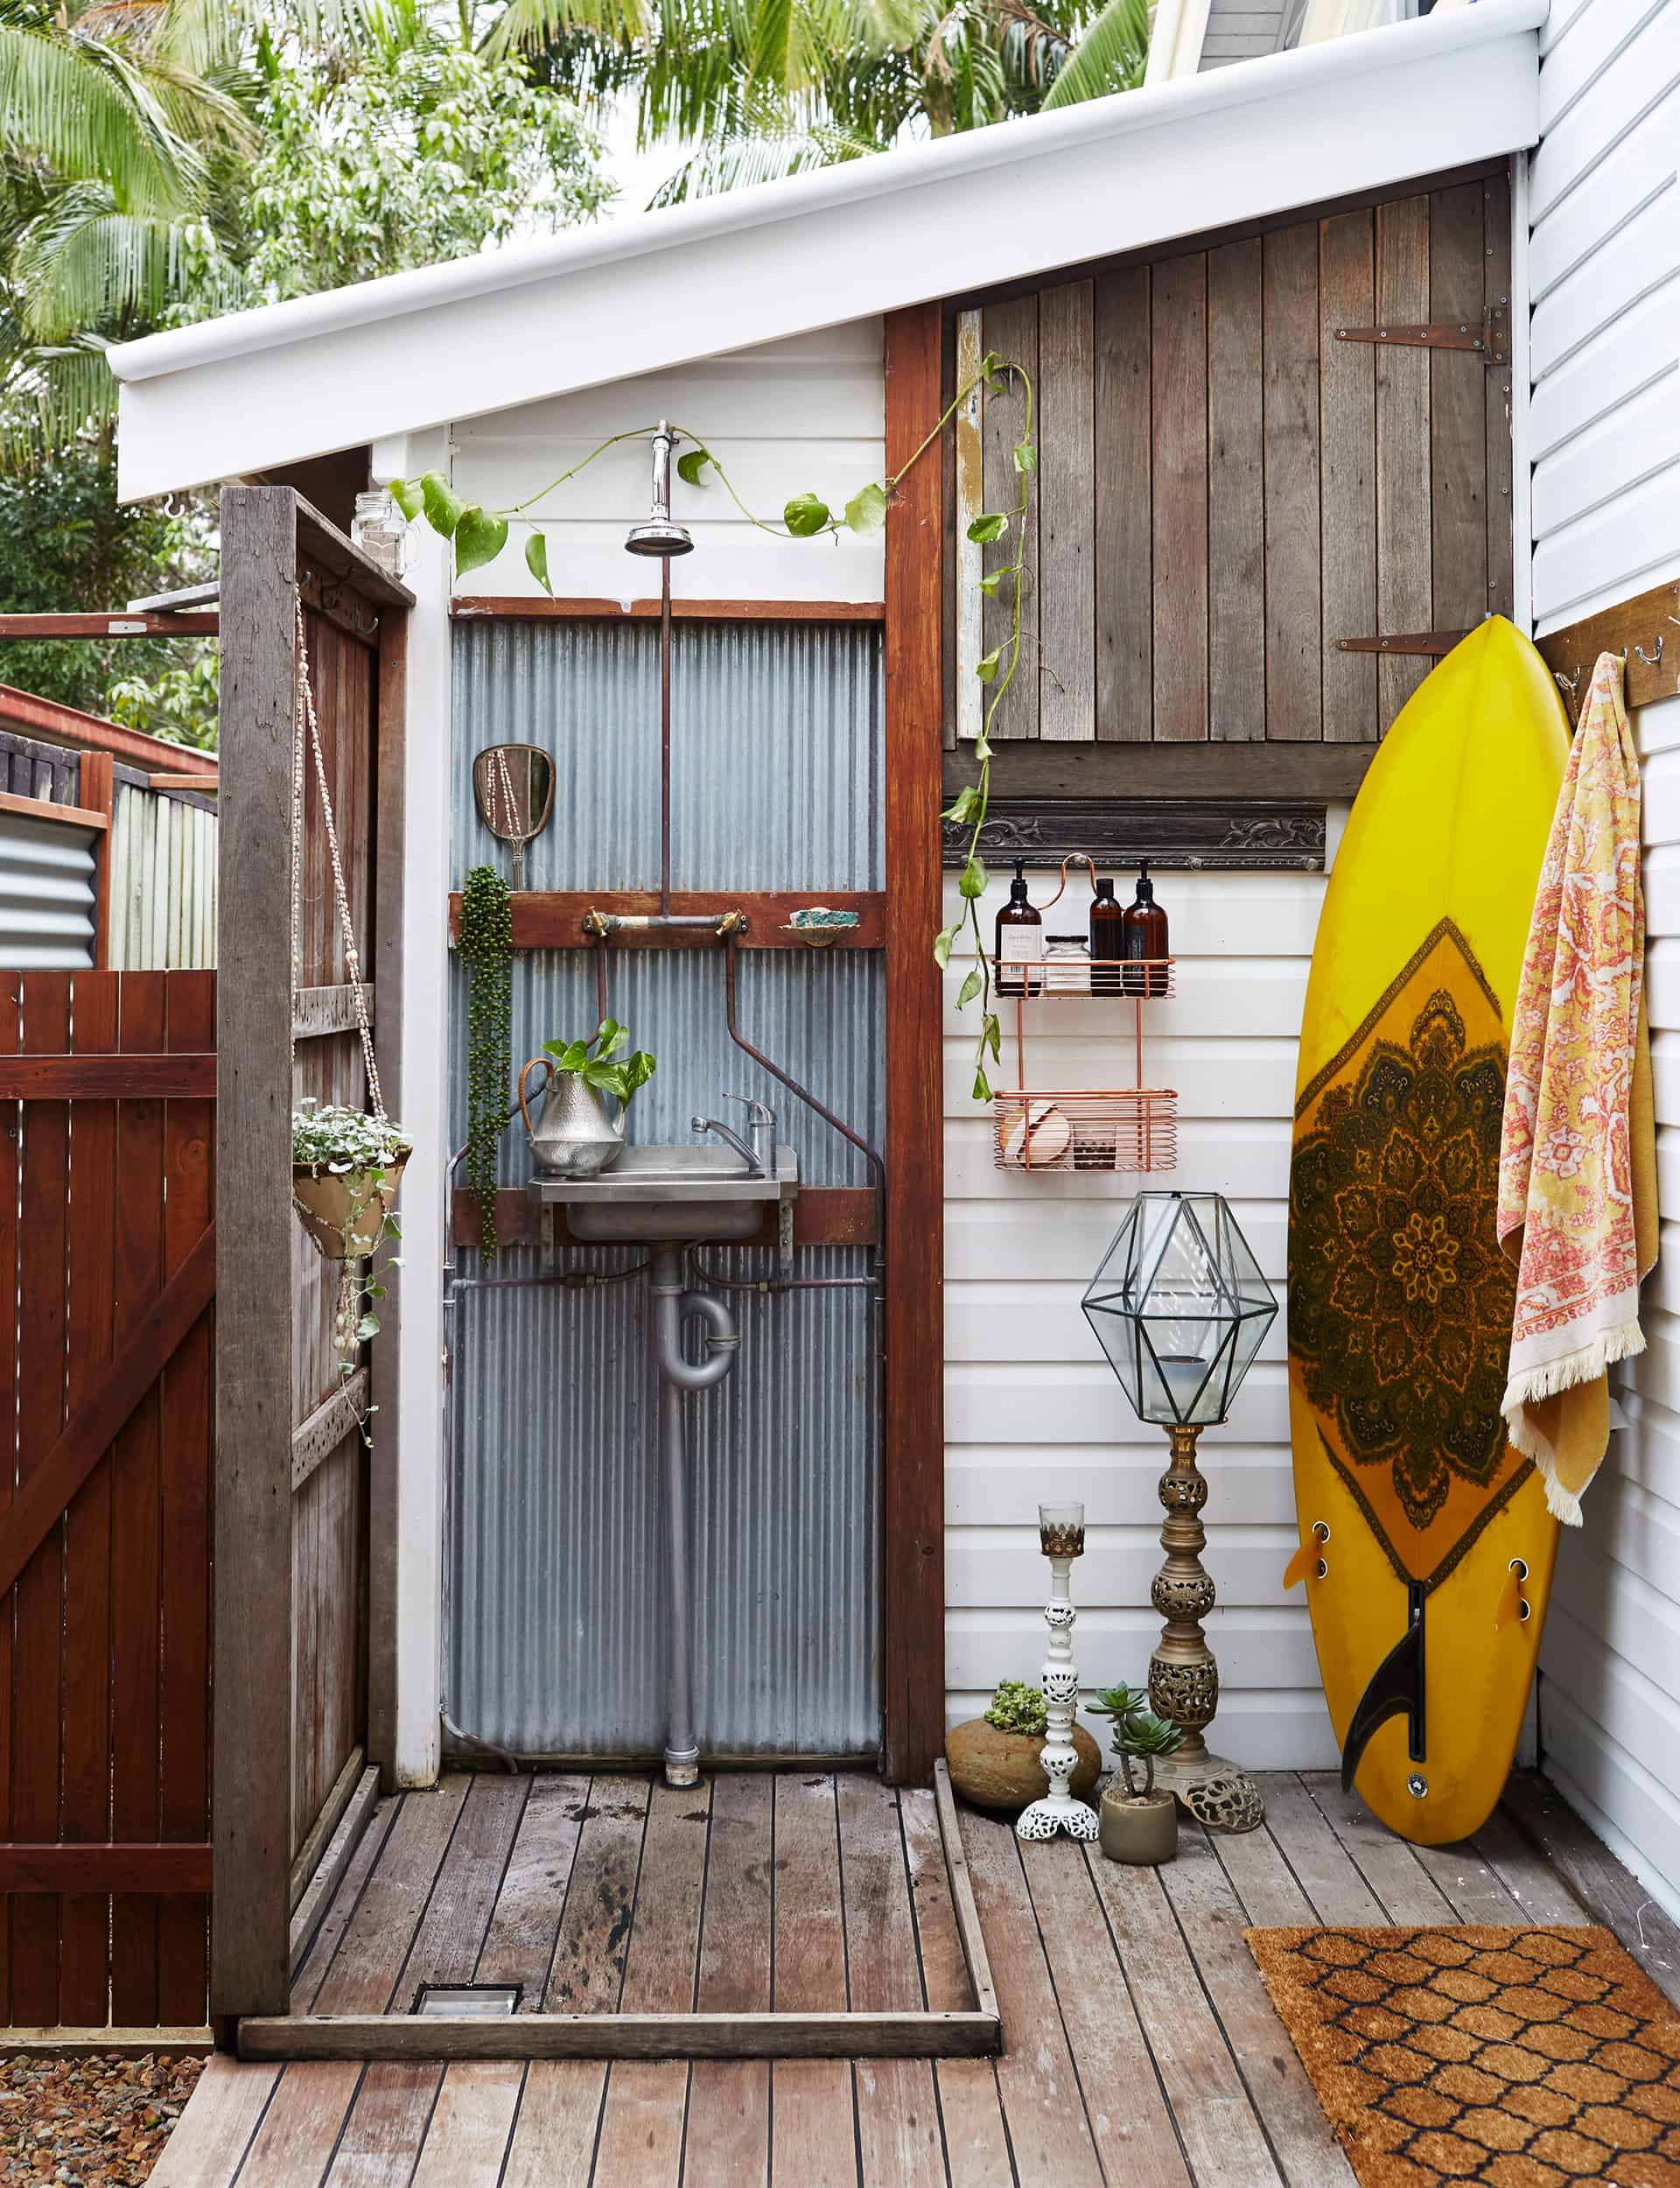 All You Need to Know Before Installing an Outdoor Shower or Bath